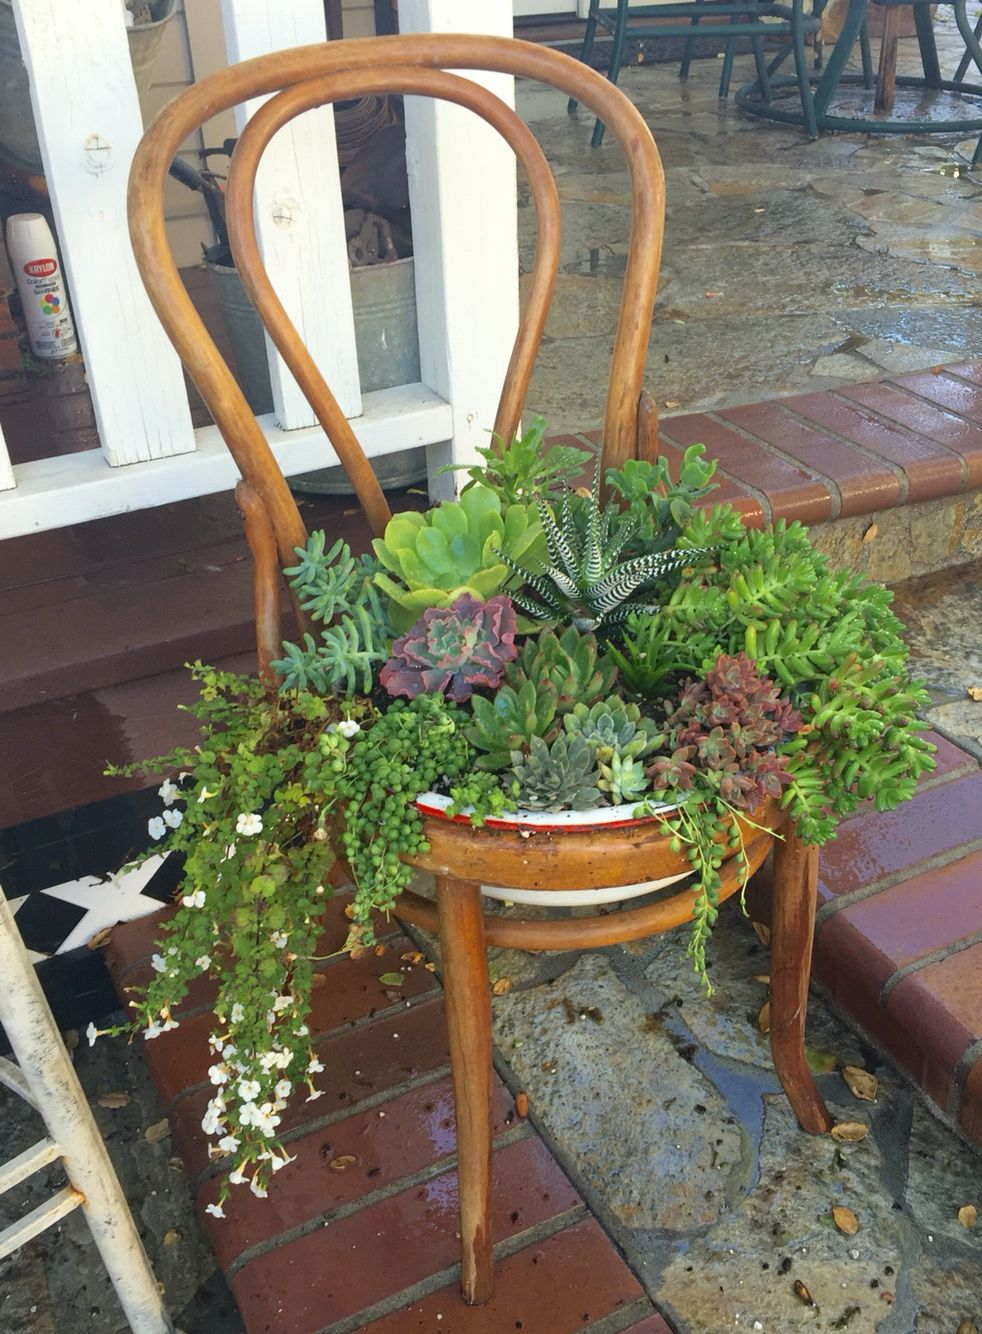 A vintage chair planted with succulents. Will be available at #junkbonanza. Follow me at The SheShed on Instagram